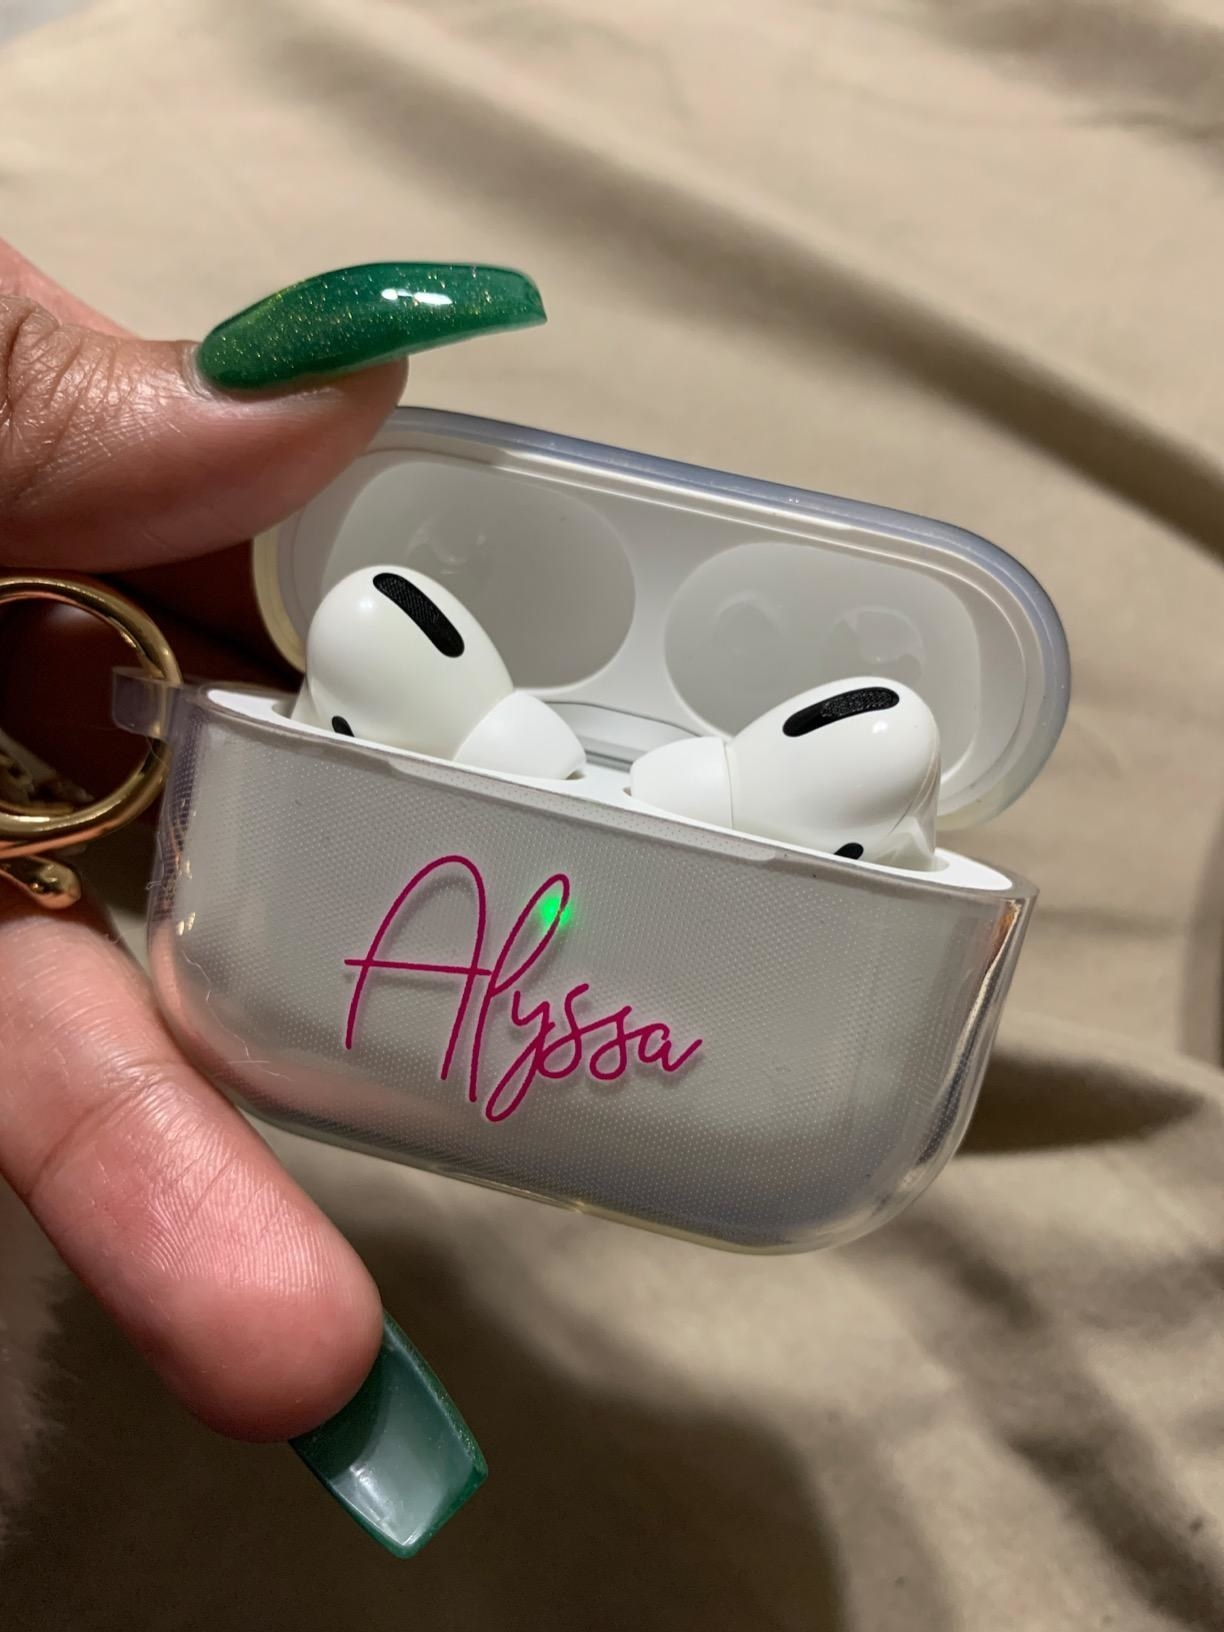 """hands hold silver AirPods case that says """"Alyssa"""" on front in pink letters"""